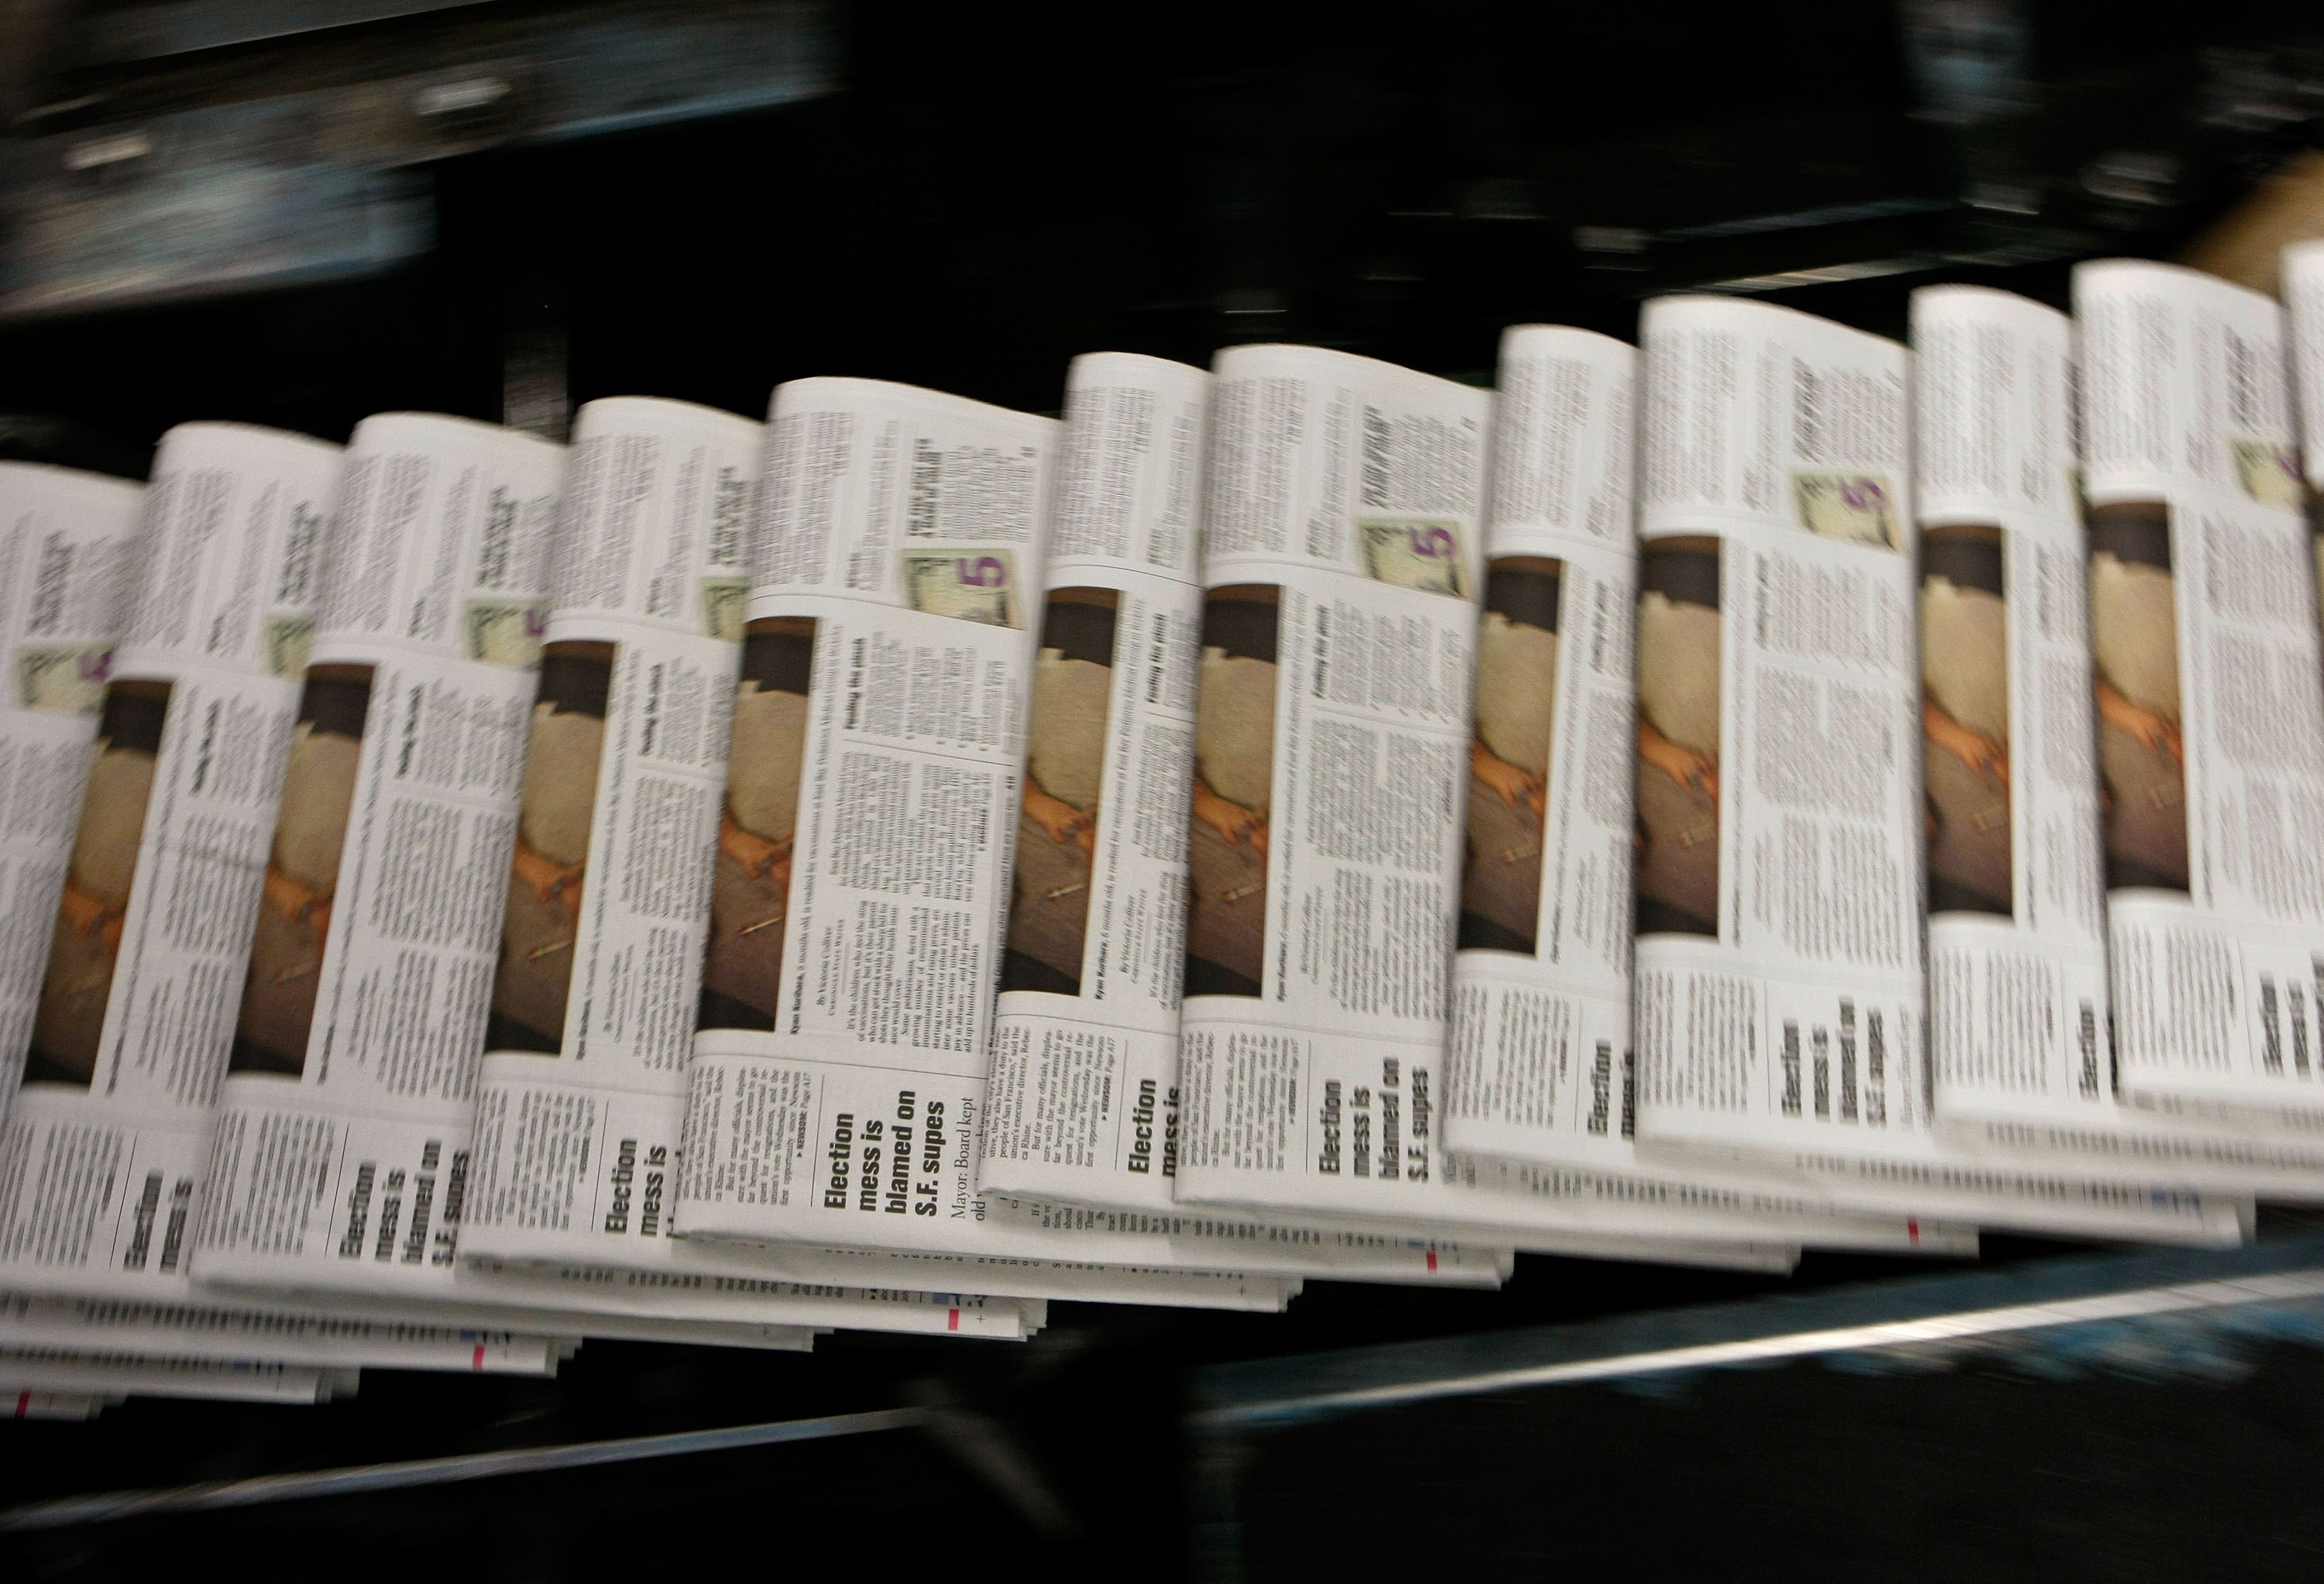 Facebook announces Paper, a Flipboard-like iOS news app that launches in the US on February 3